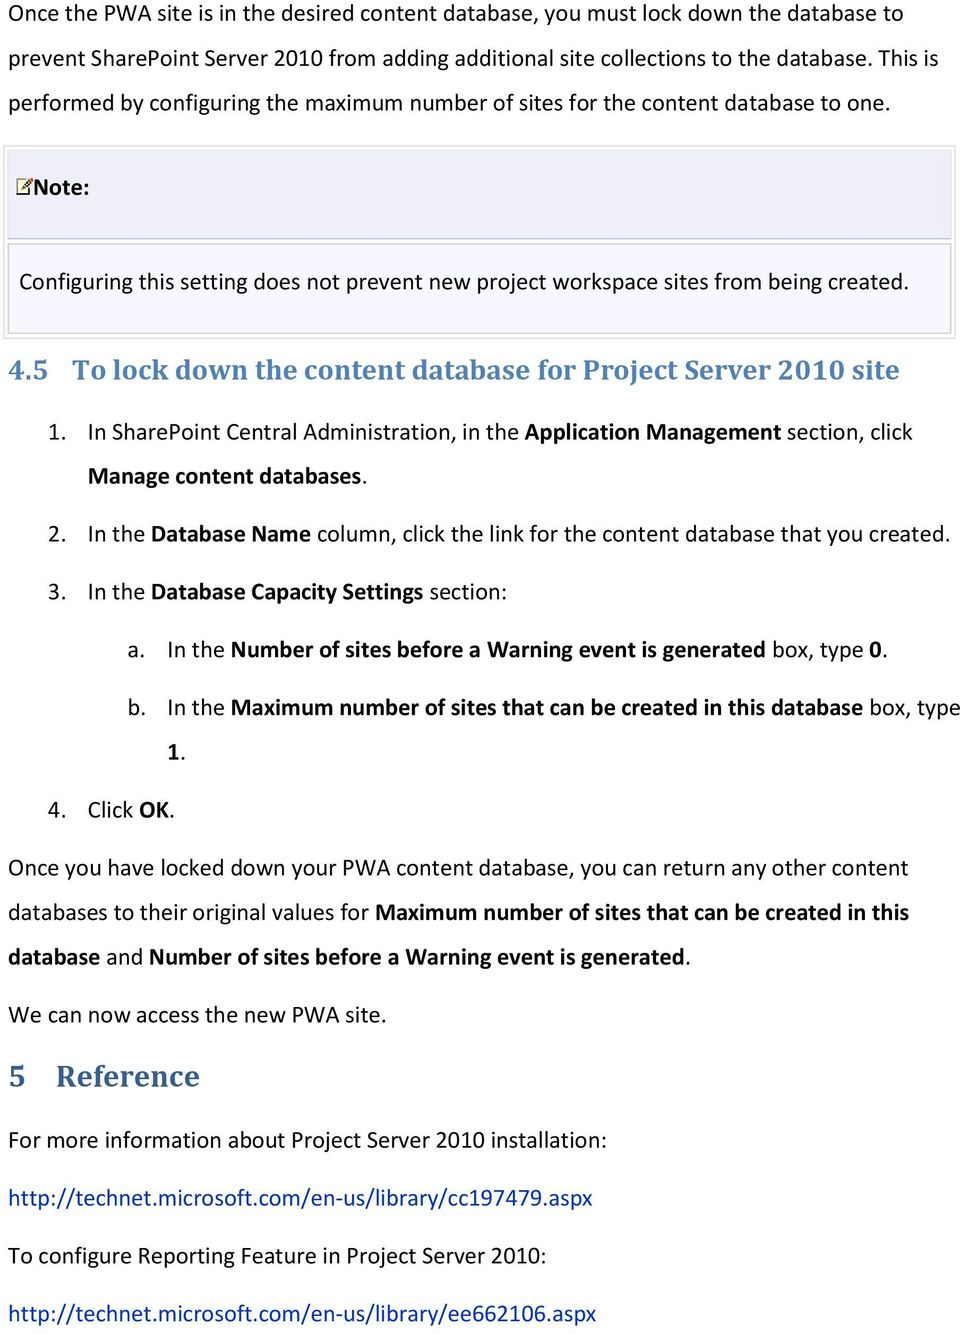 5 To lock down the content database for Project Server 2010 site 1. In SharePoint Central Administration, in the Application Management section, click Manage content databases. 2. In the Database Name column, click the link for the content database that you created.